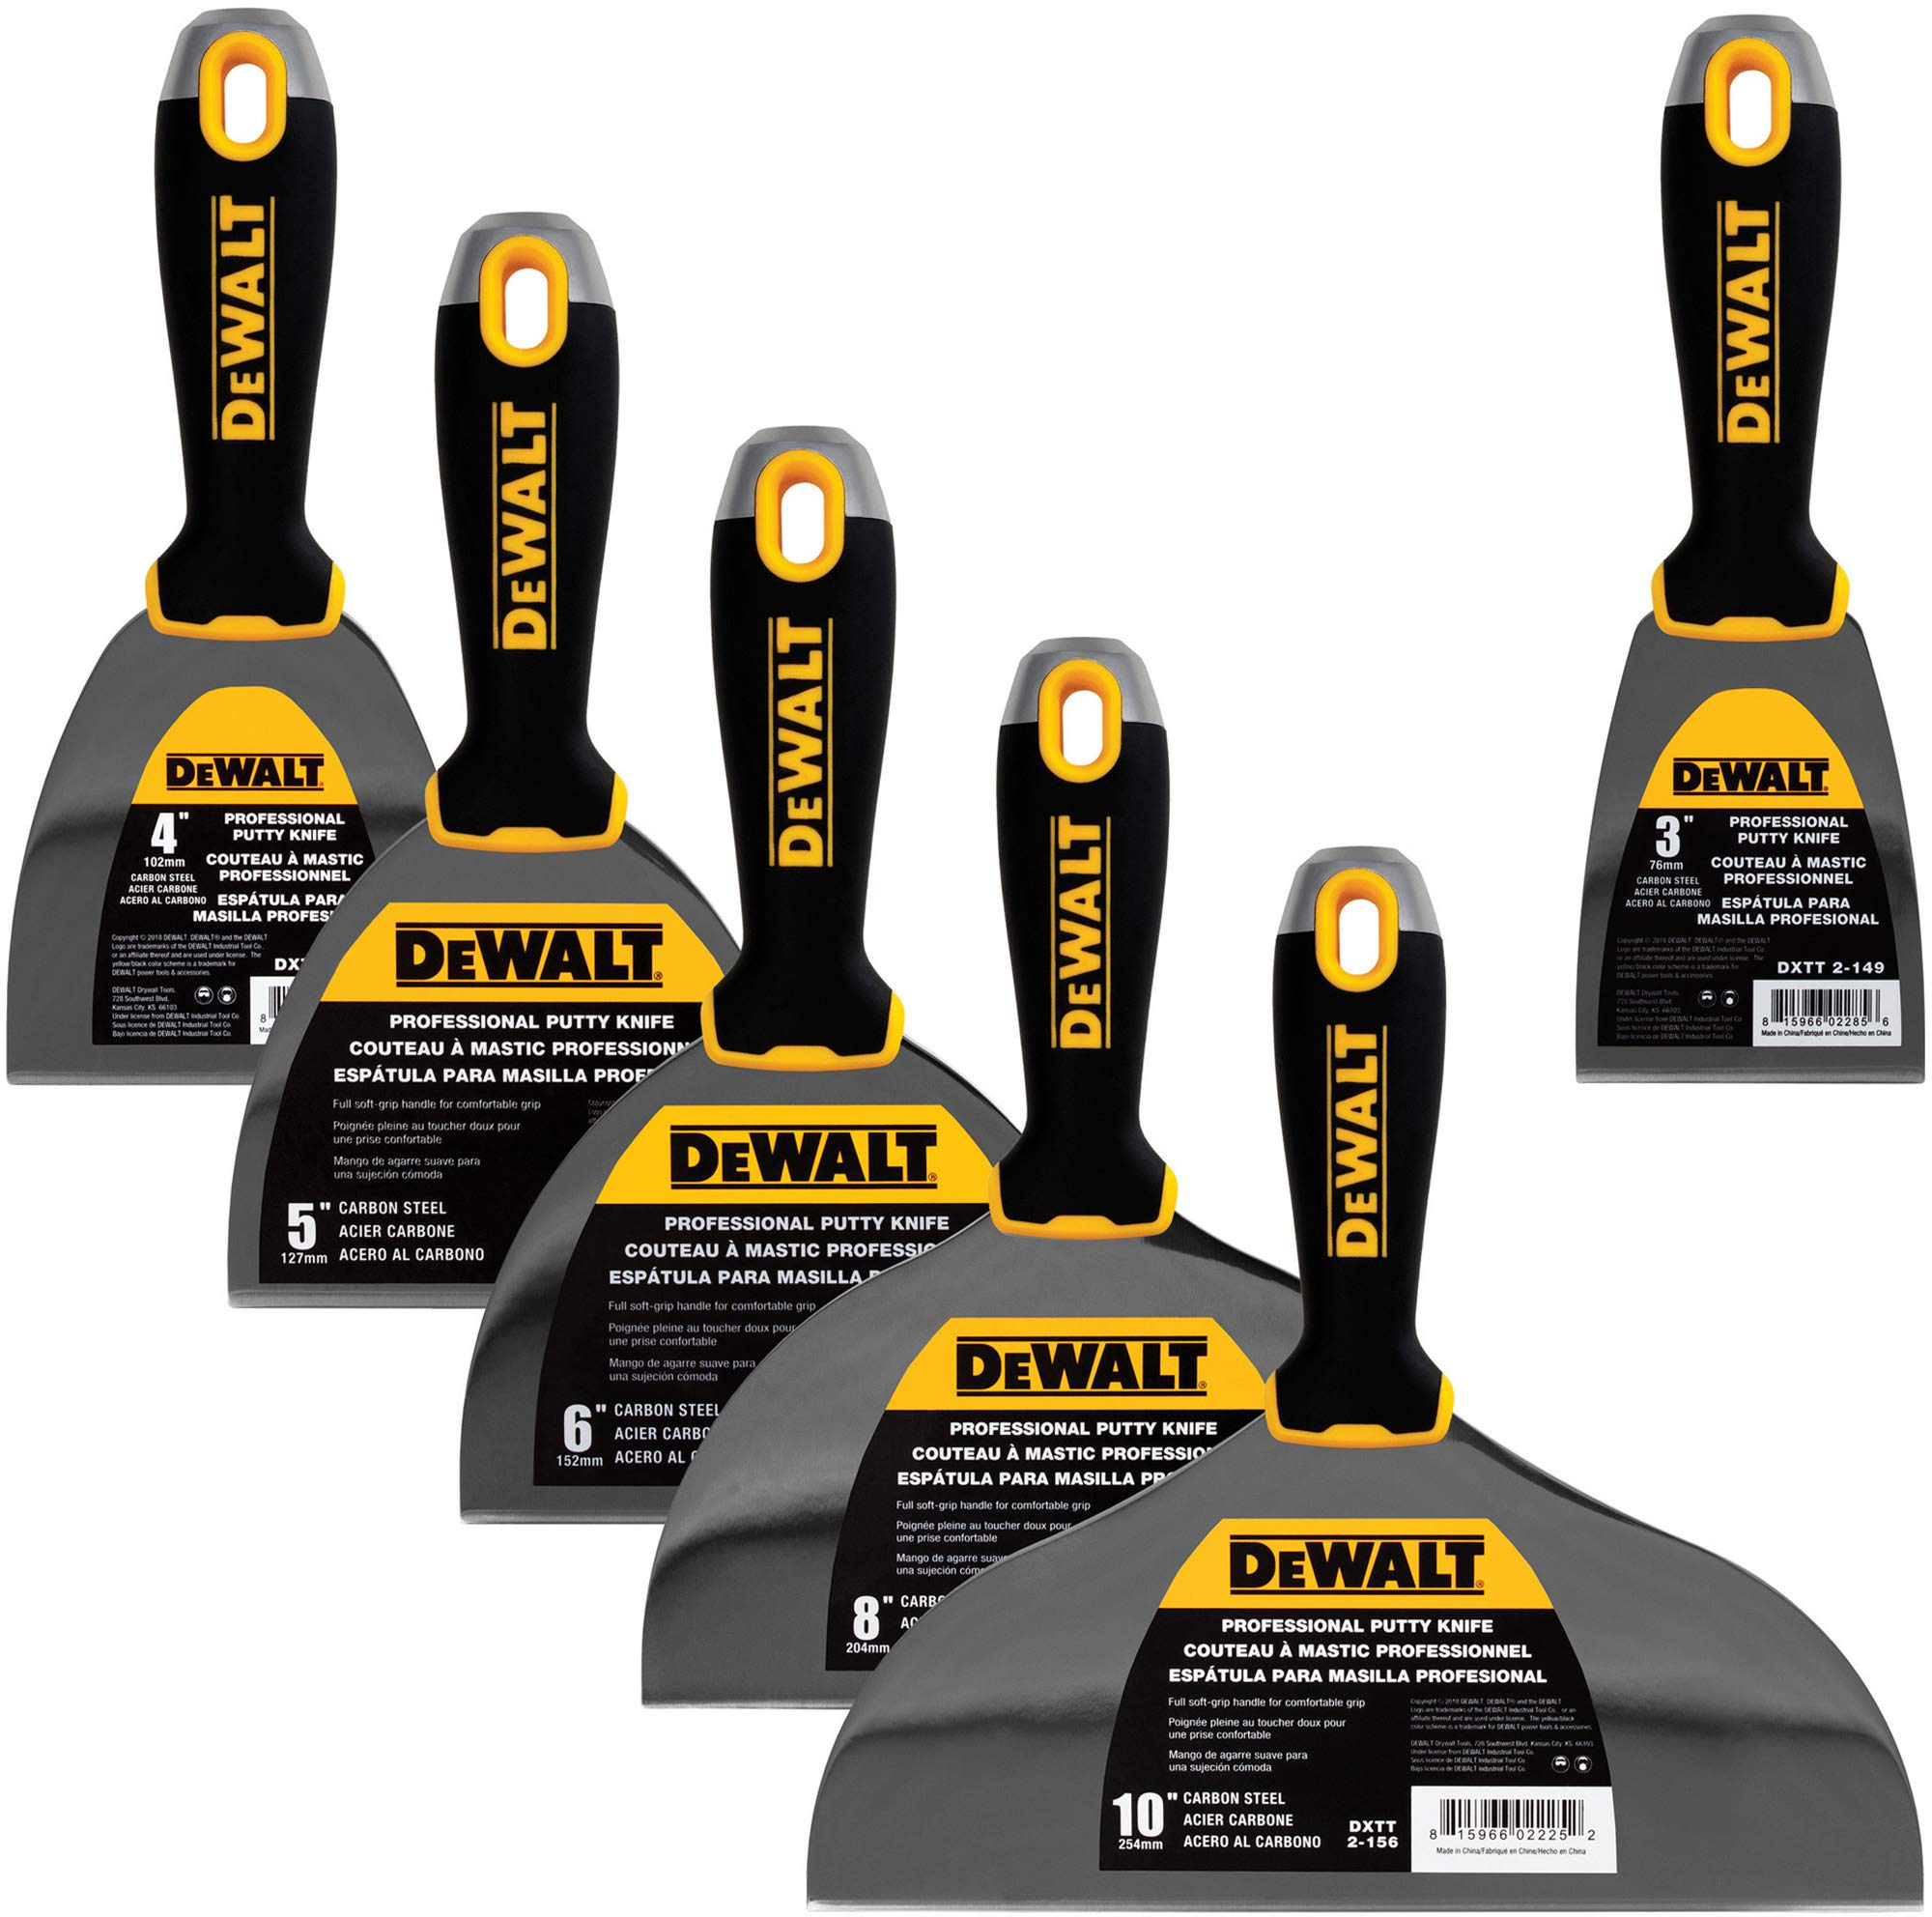 DEWALT DELUXE Carbon Steel Putty Knife Set | 4/5/6/8/10-Inch + 3-Inch Included for FREE | Soft Grip Handles | DXTT-3-149 by DEWALT